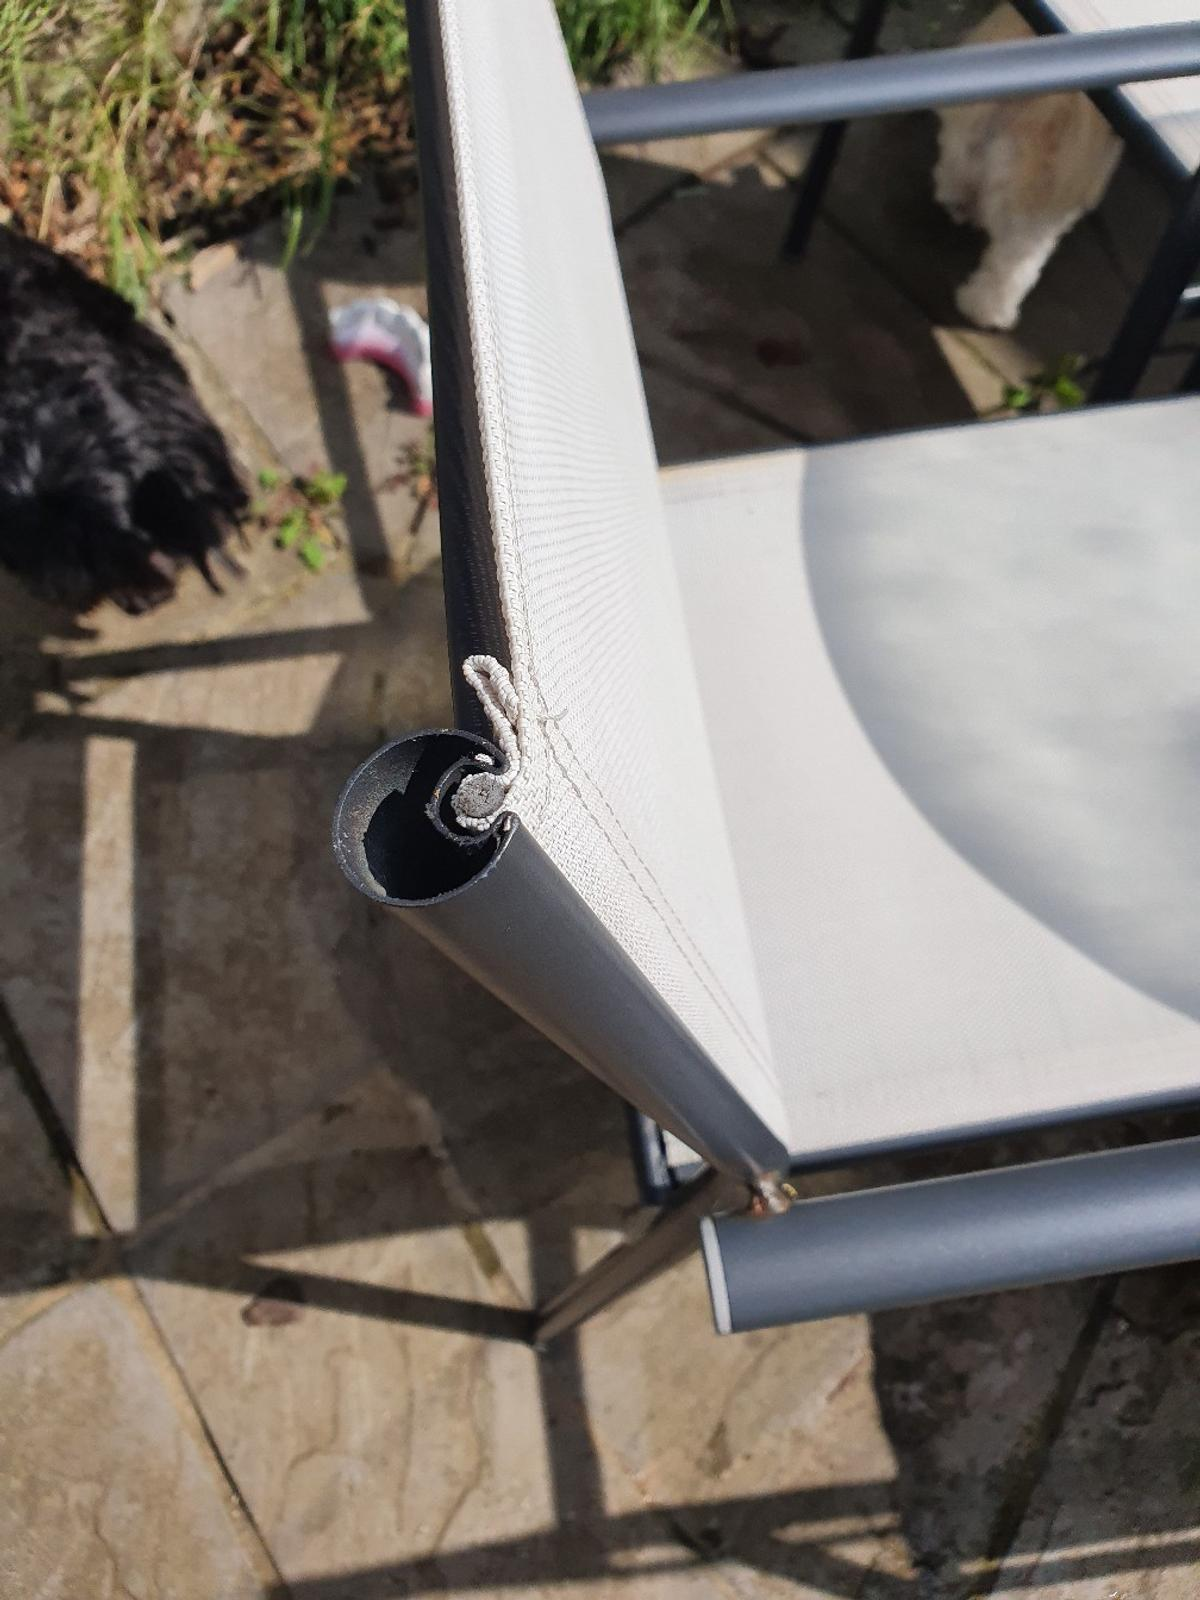 OUT SIDE ROUND TABLE AND 4 WHITE CHAIRSI